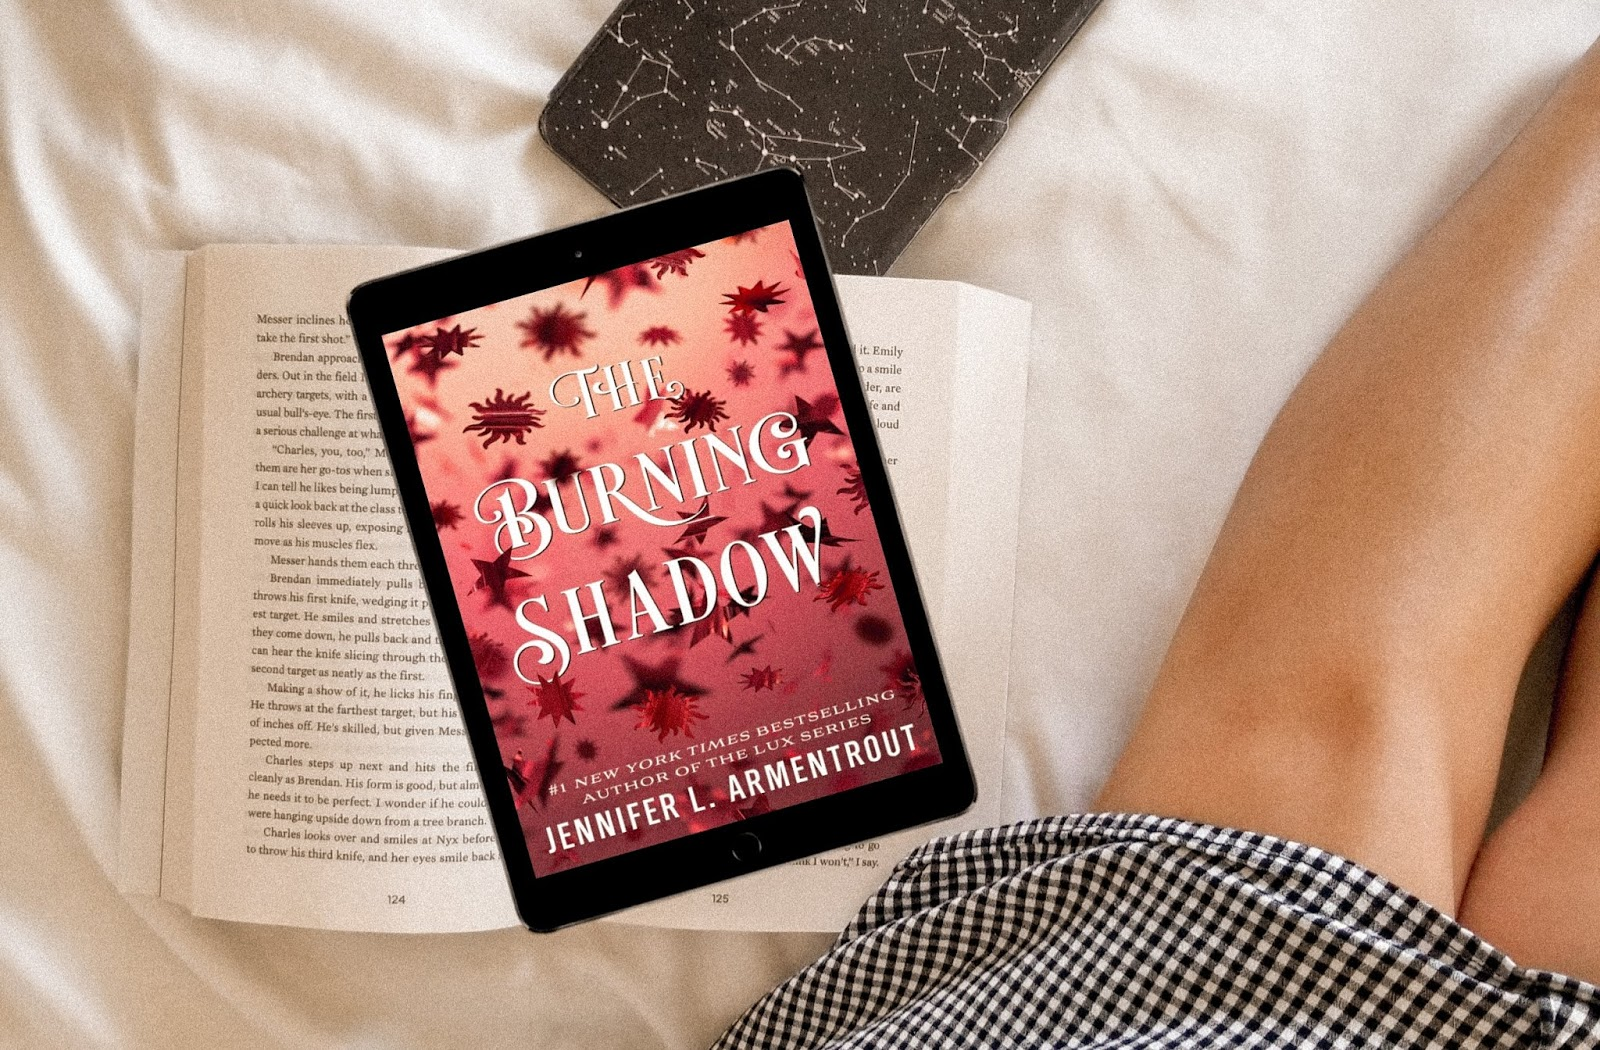 Phenomenal Shocking Action Packed The Burning Shadow By Jennifer L Armentrout Whispering Chapters